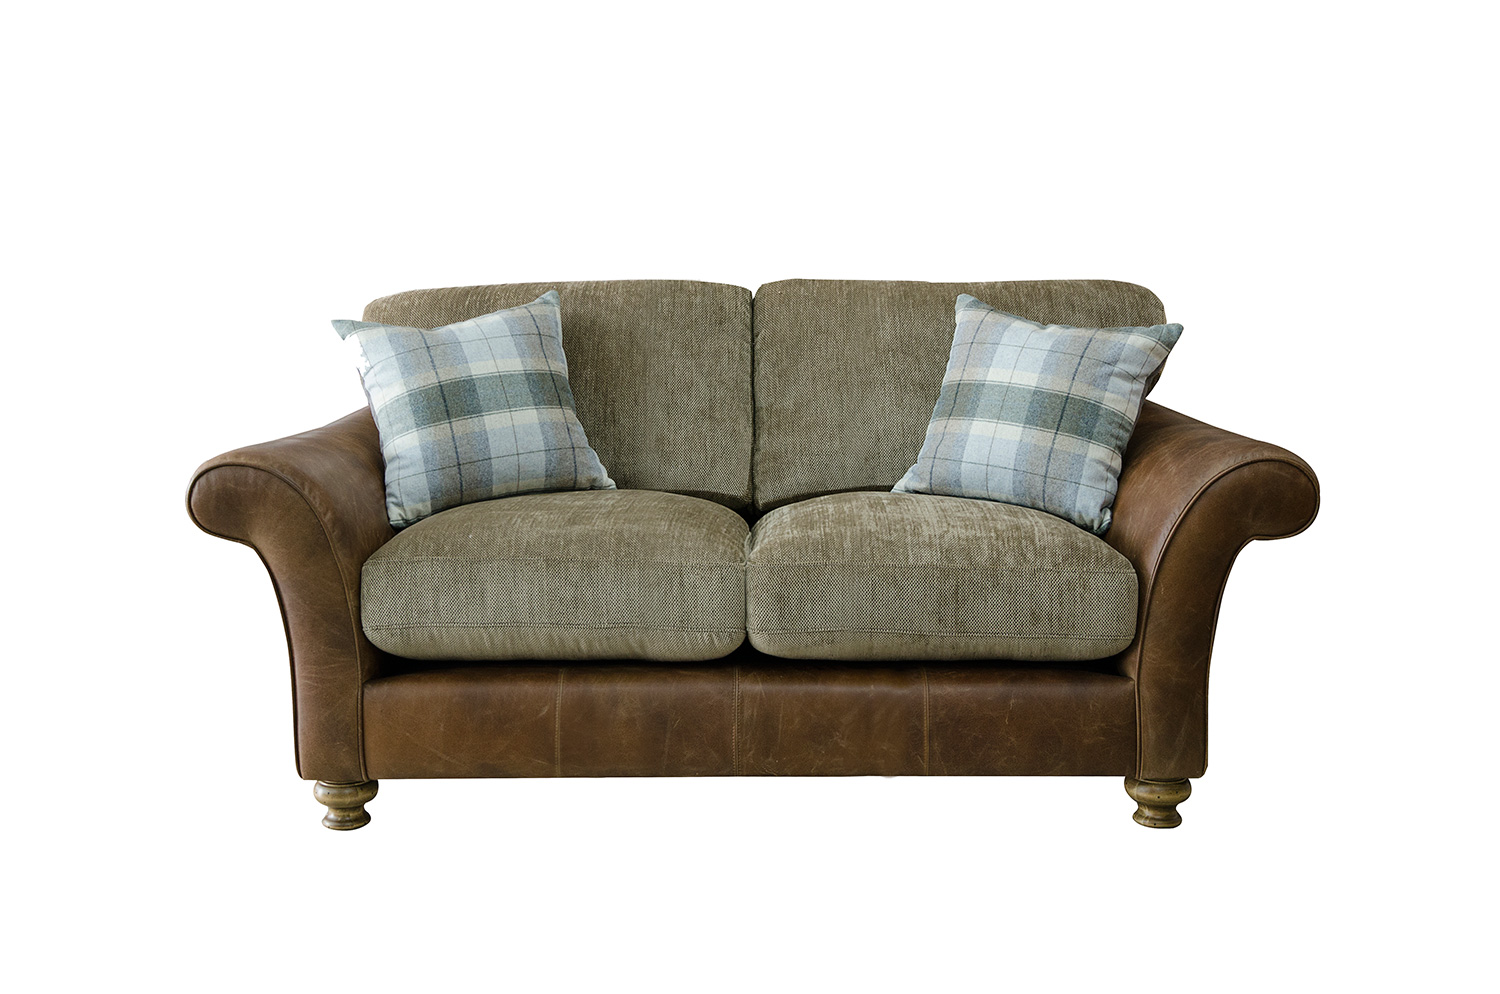 Lawrence 2 Seater Sofa Alexander And James